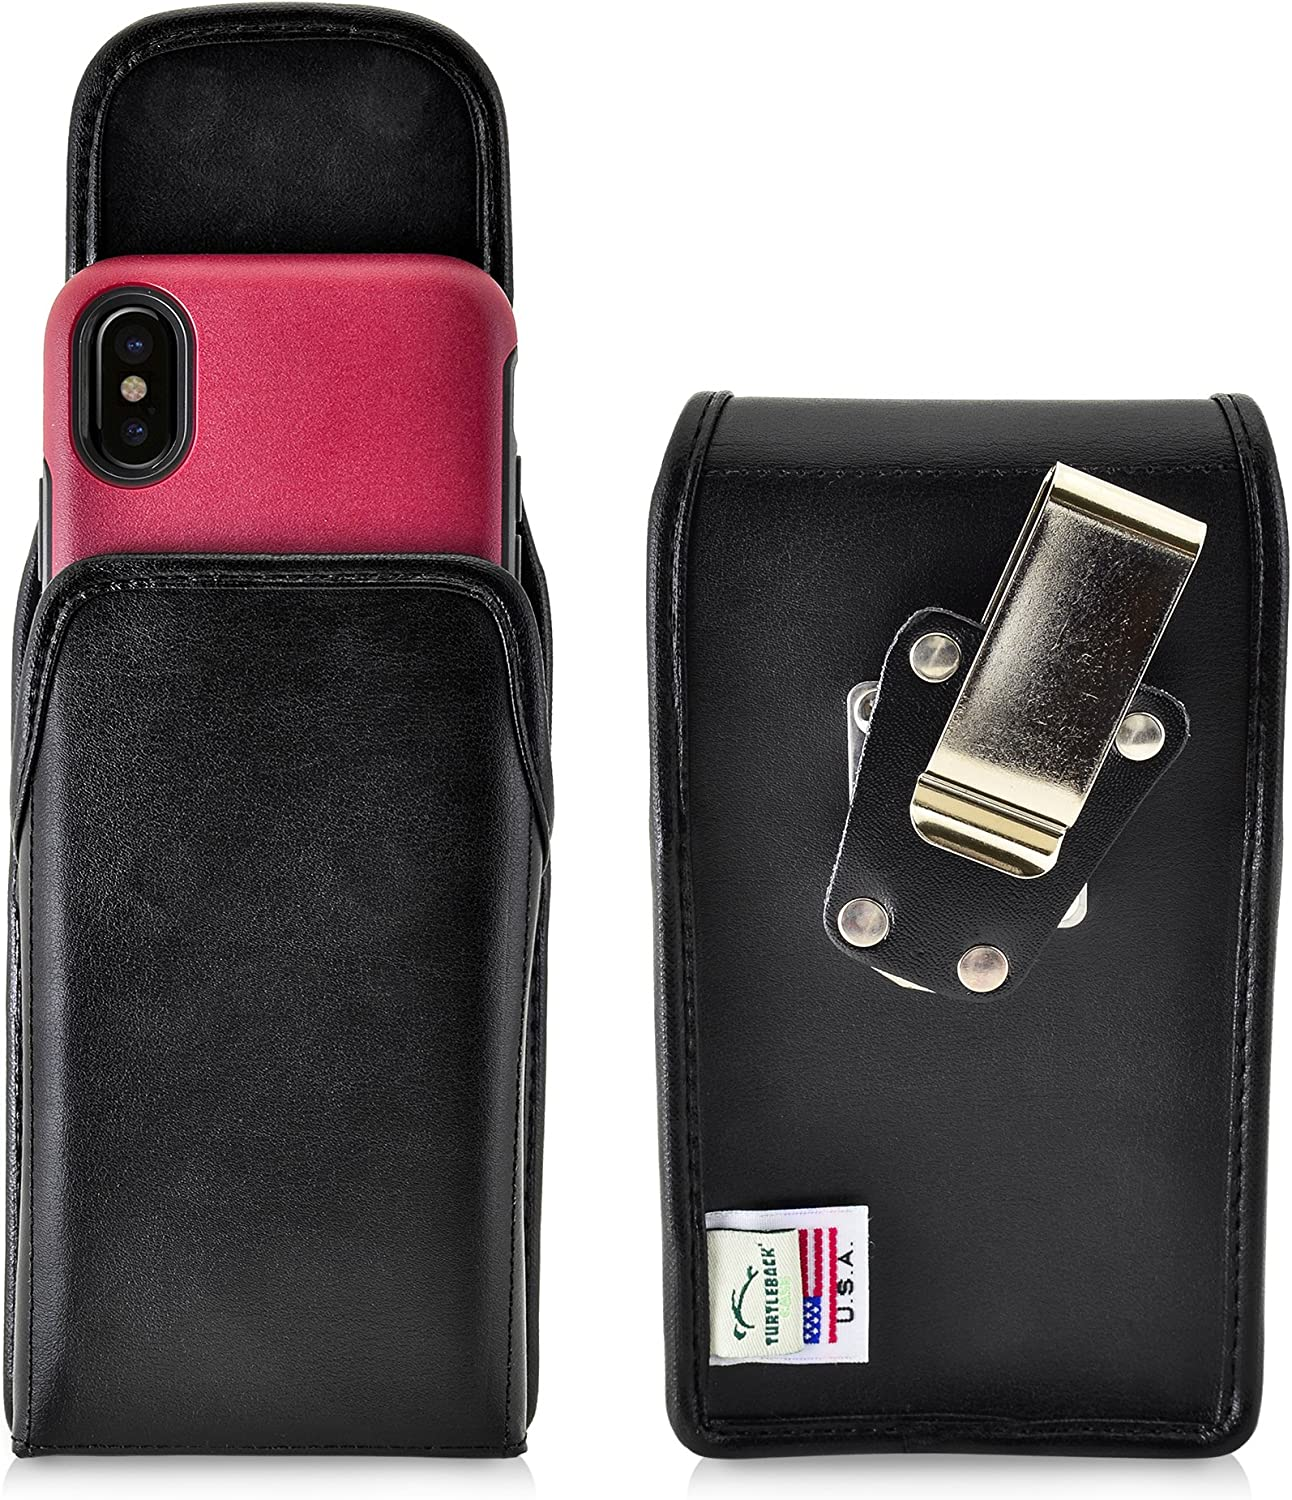 Turtleback Belt Case Compatible with iPhone 11 Pro, XS & X w/OB Commuter Symmetry case Black Vertical Holster Leather Pouch with Heavy Duty Rotating Ratcheting Belt Clip Made in USA